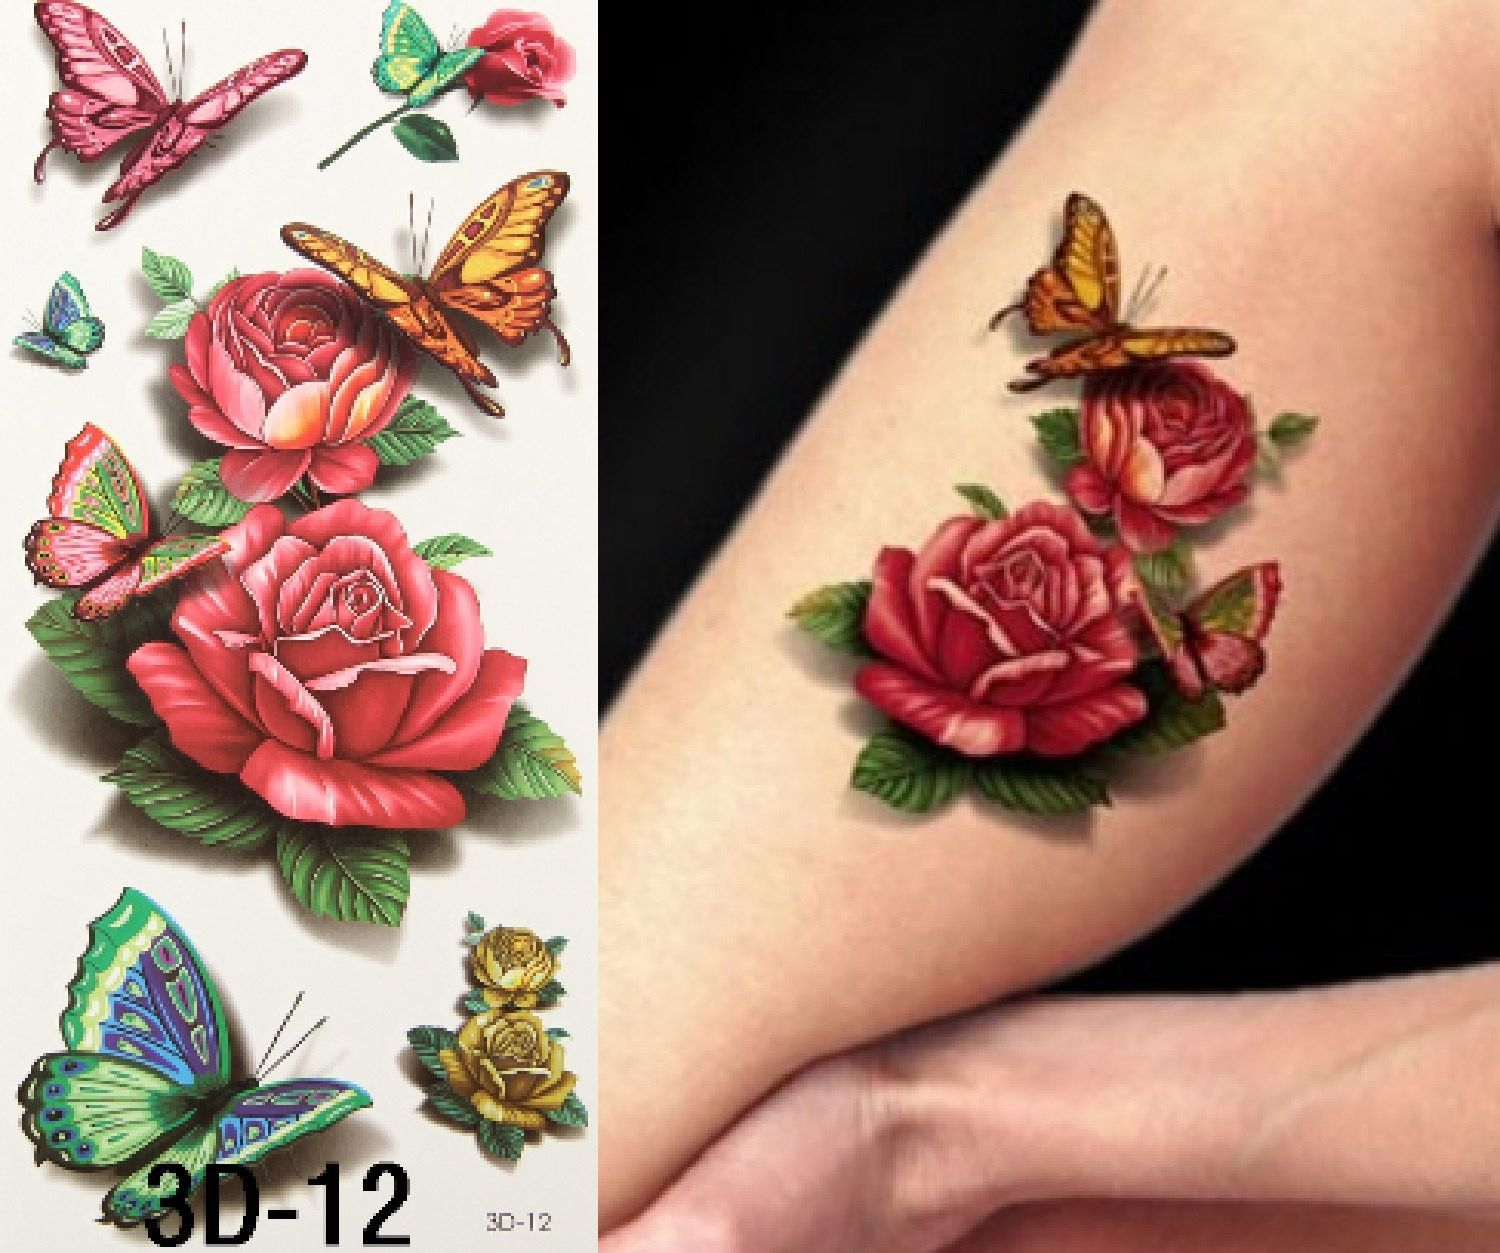 28761a2800add Temporary Tattoo Rose, Floral Temporary Tattoo, Butterfly, Butter Fly,  Watercolor, Watercolour, Set, Vintage, Art, Design, 3D Tattoo